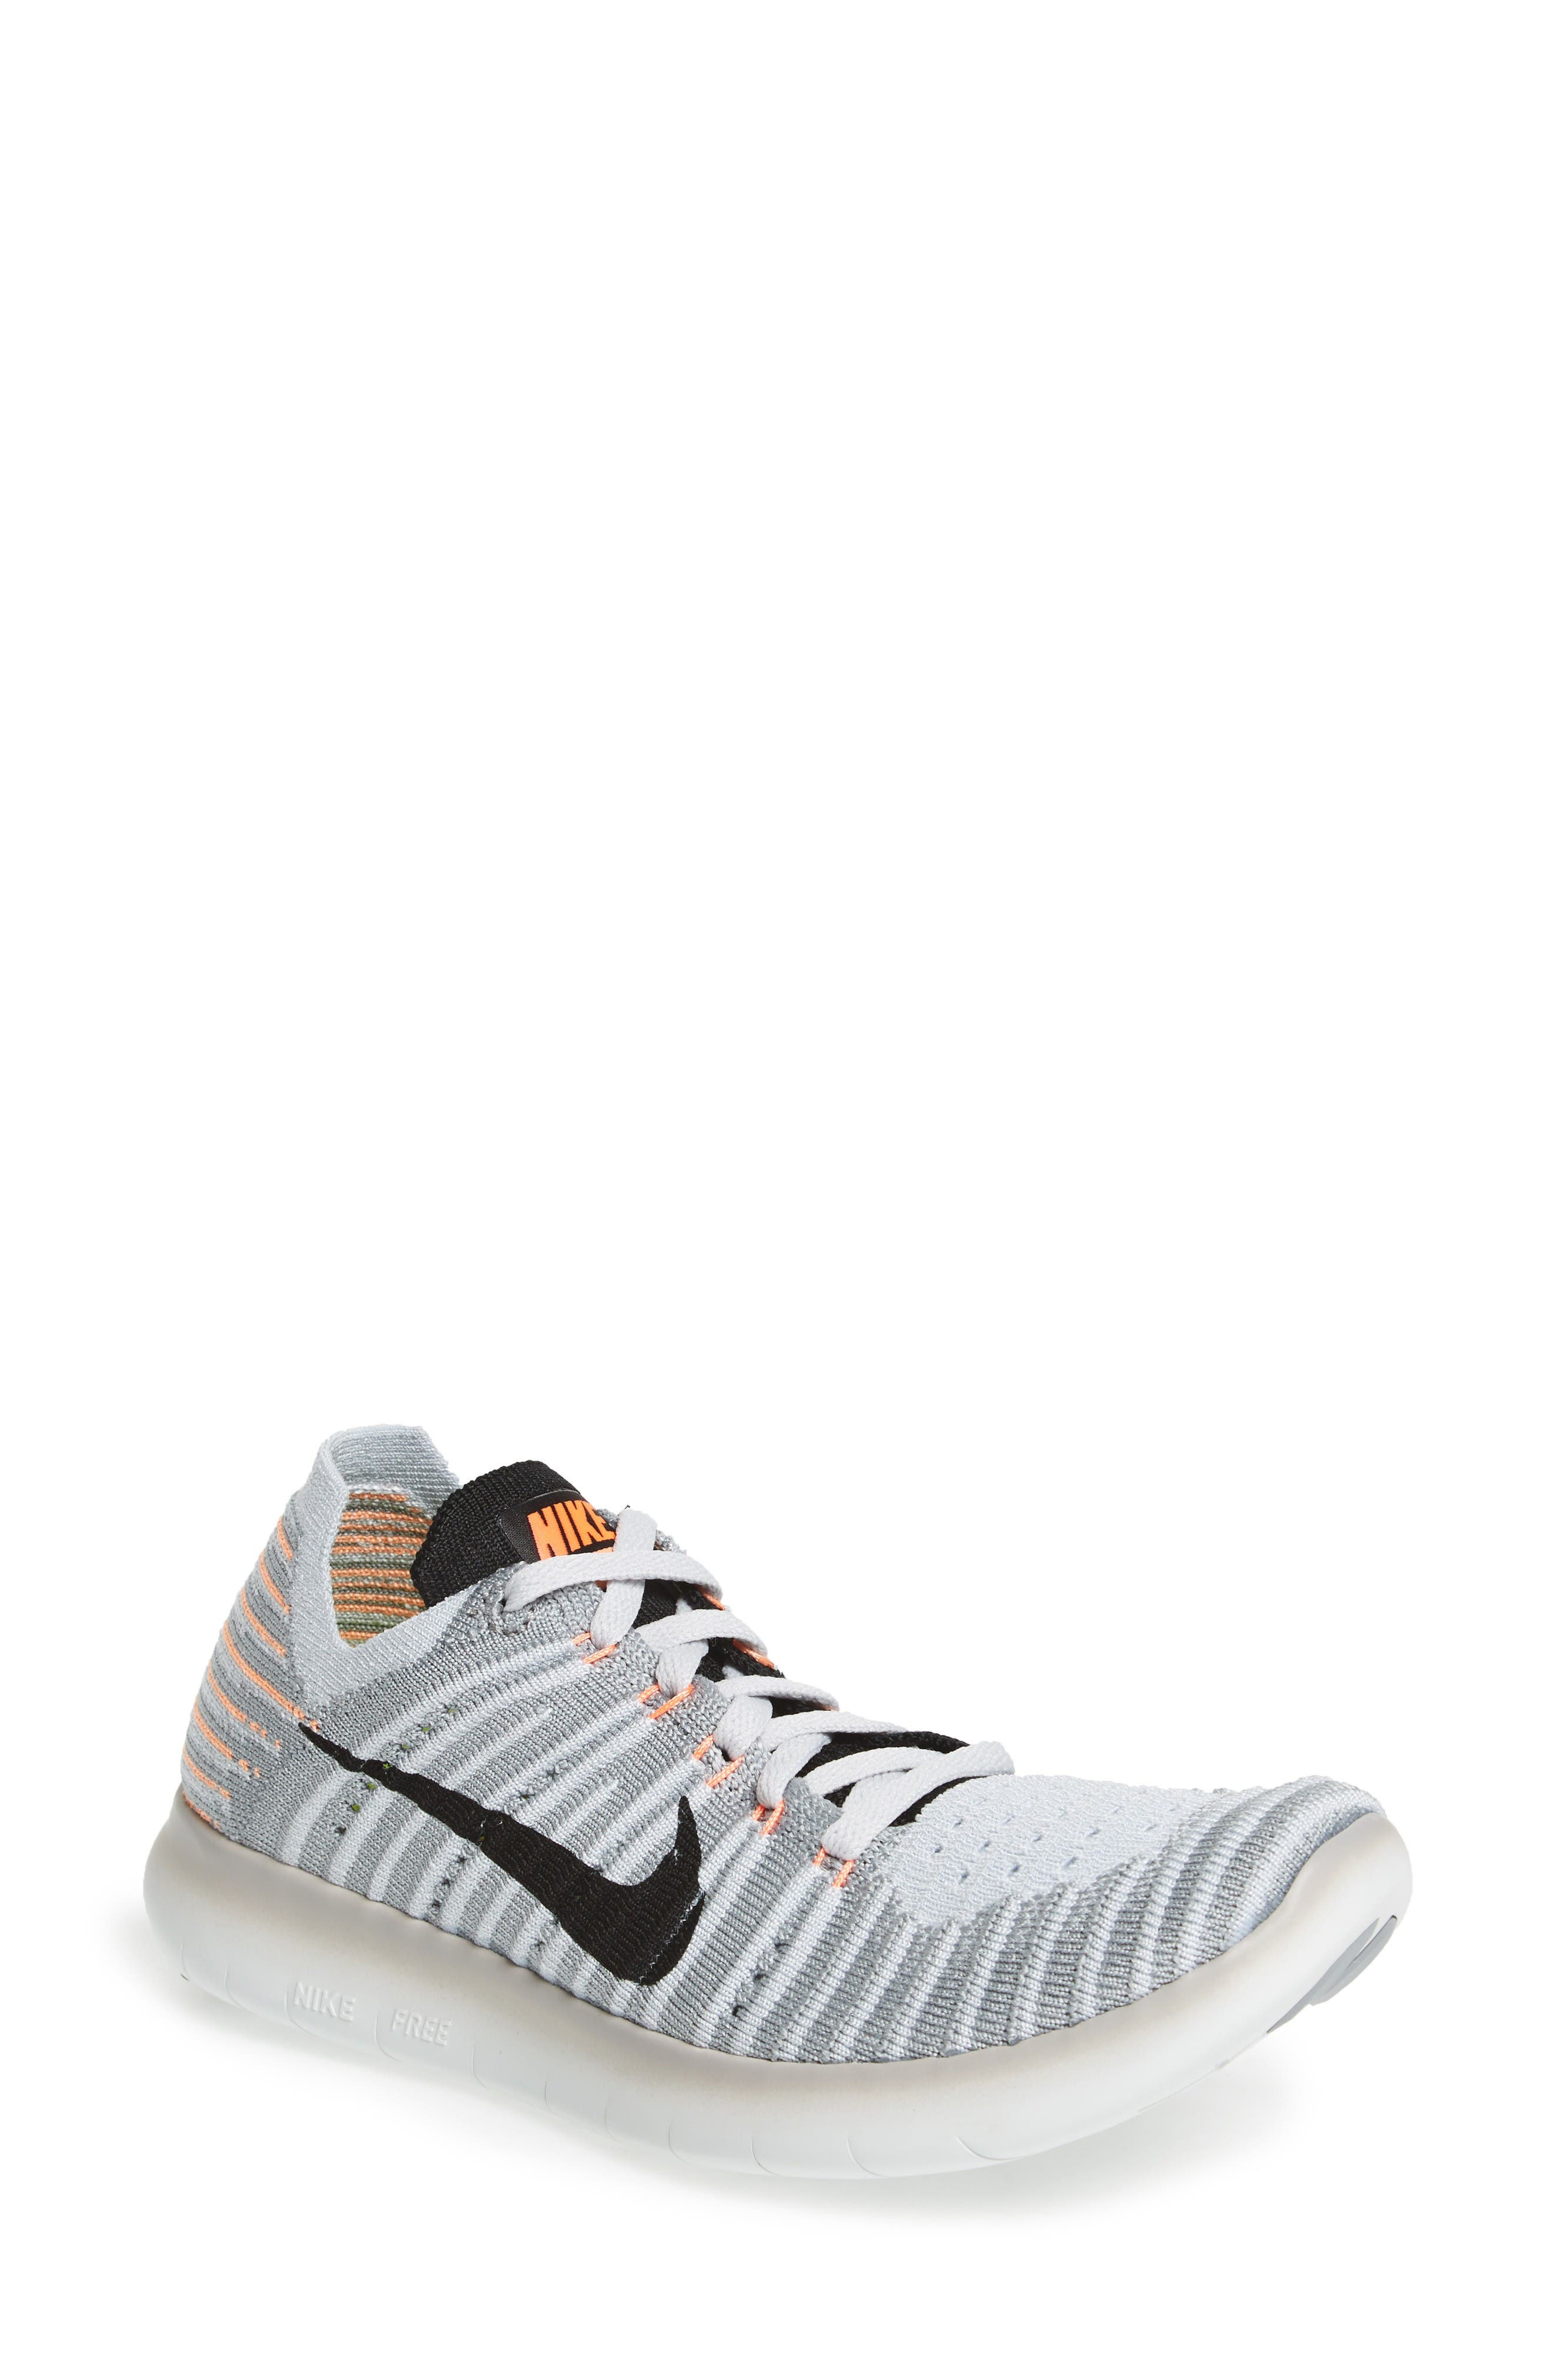 Nike Free 3 0 Chaussures Chez Sears Canada